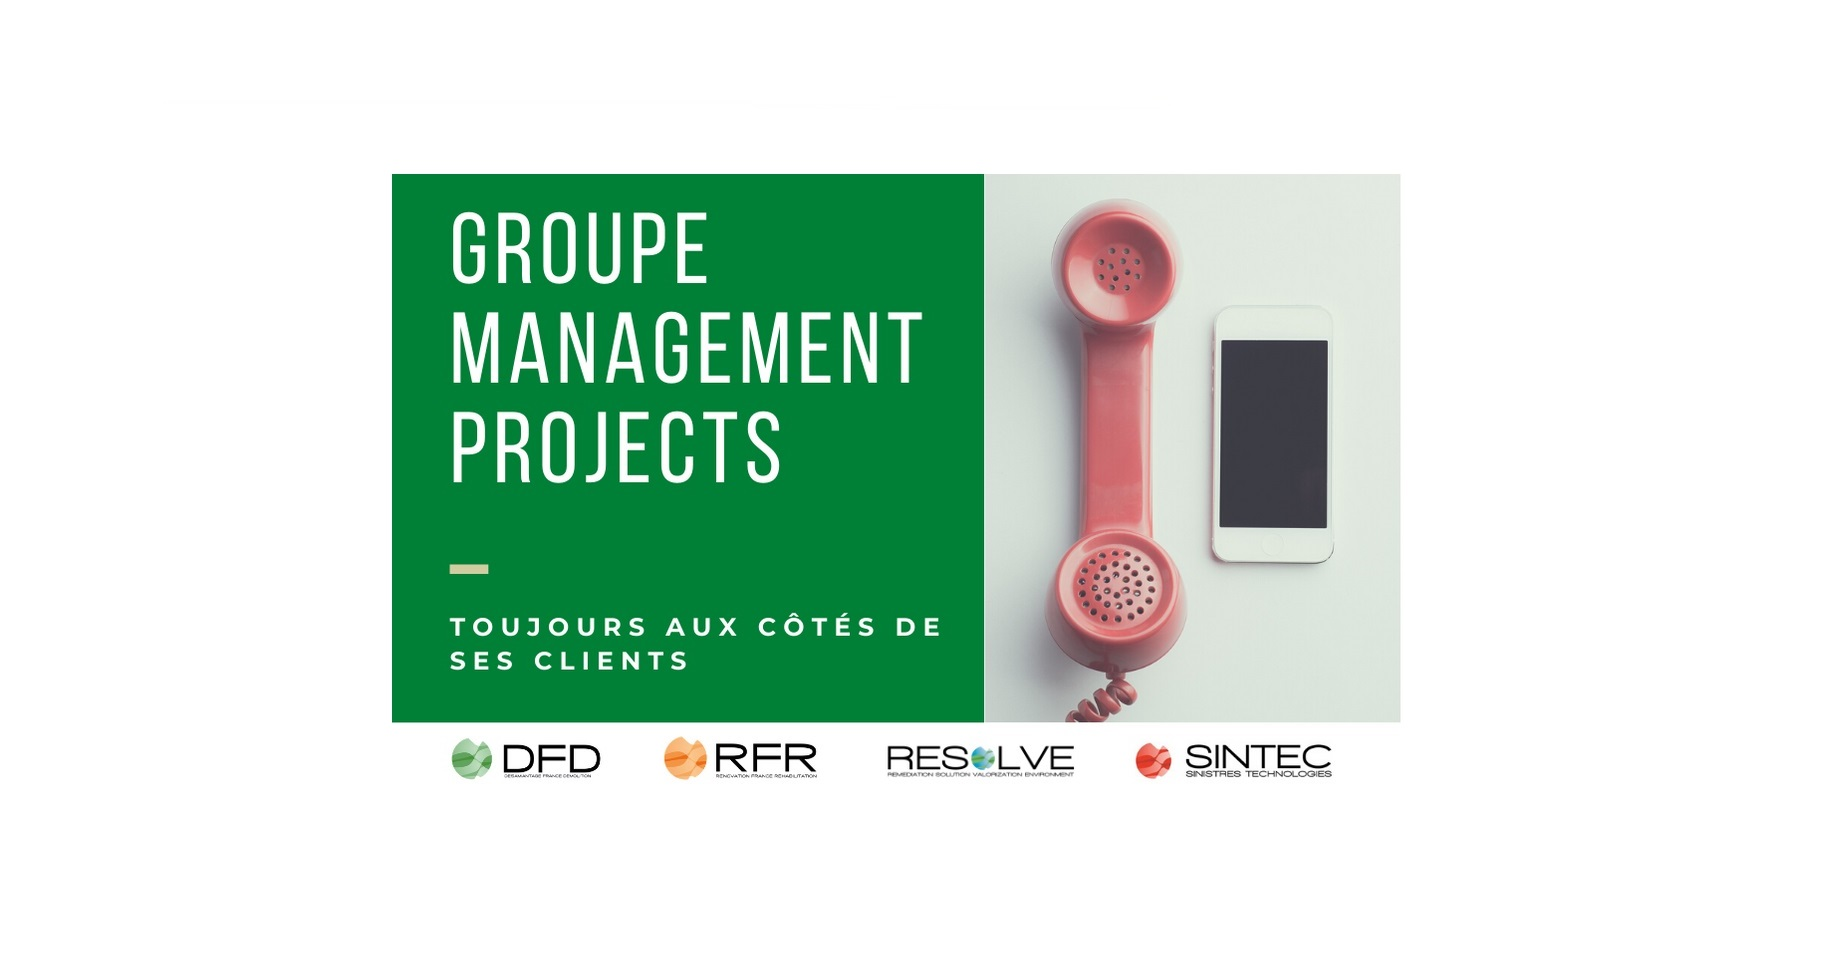 Le groupe Management Projects mobilisé